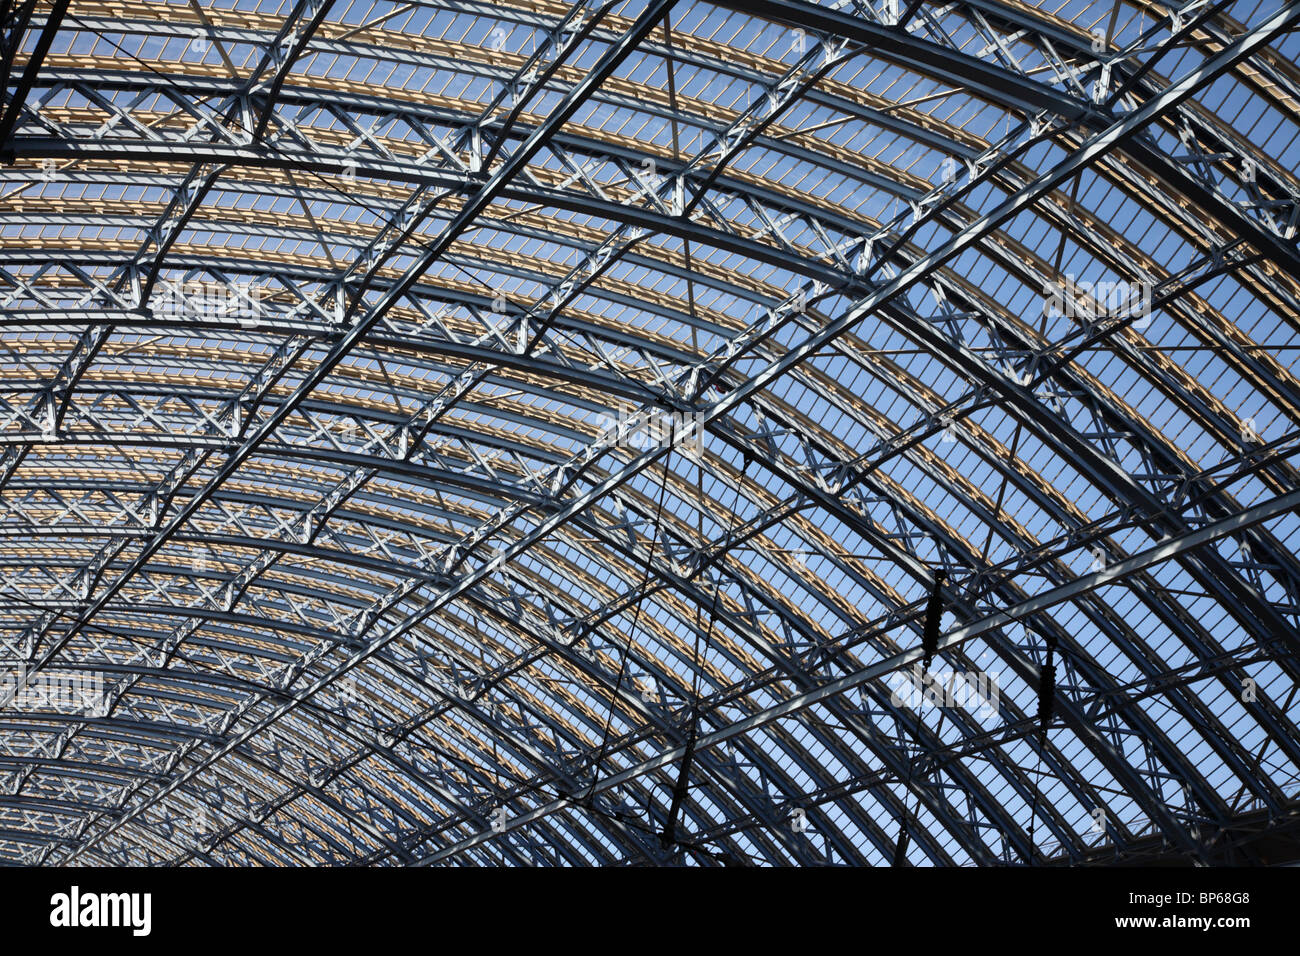 The roof of St Pancras Station, Camden, London, NW1. - Stock Image